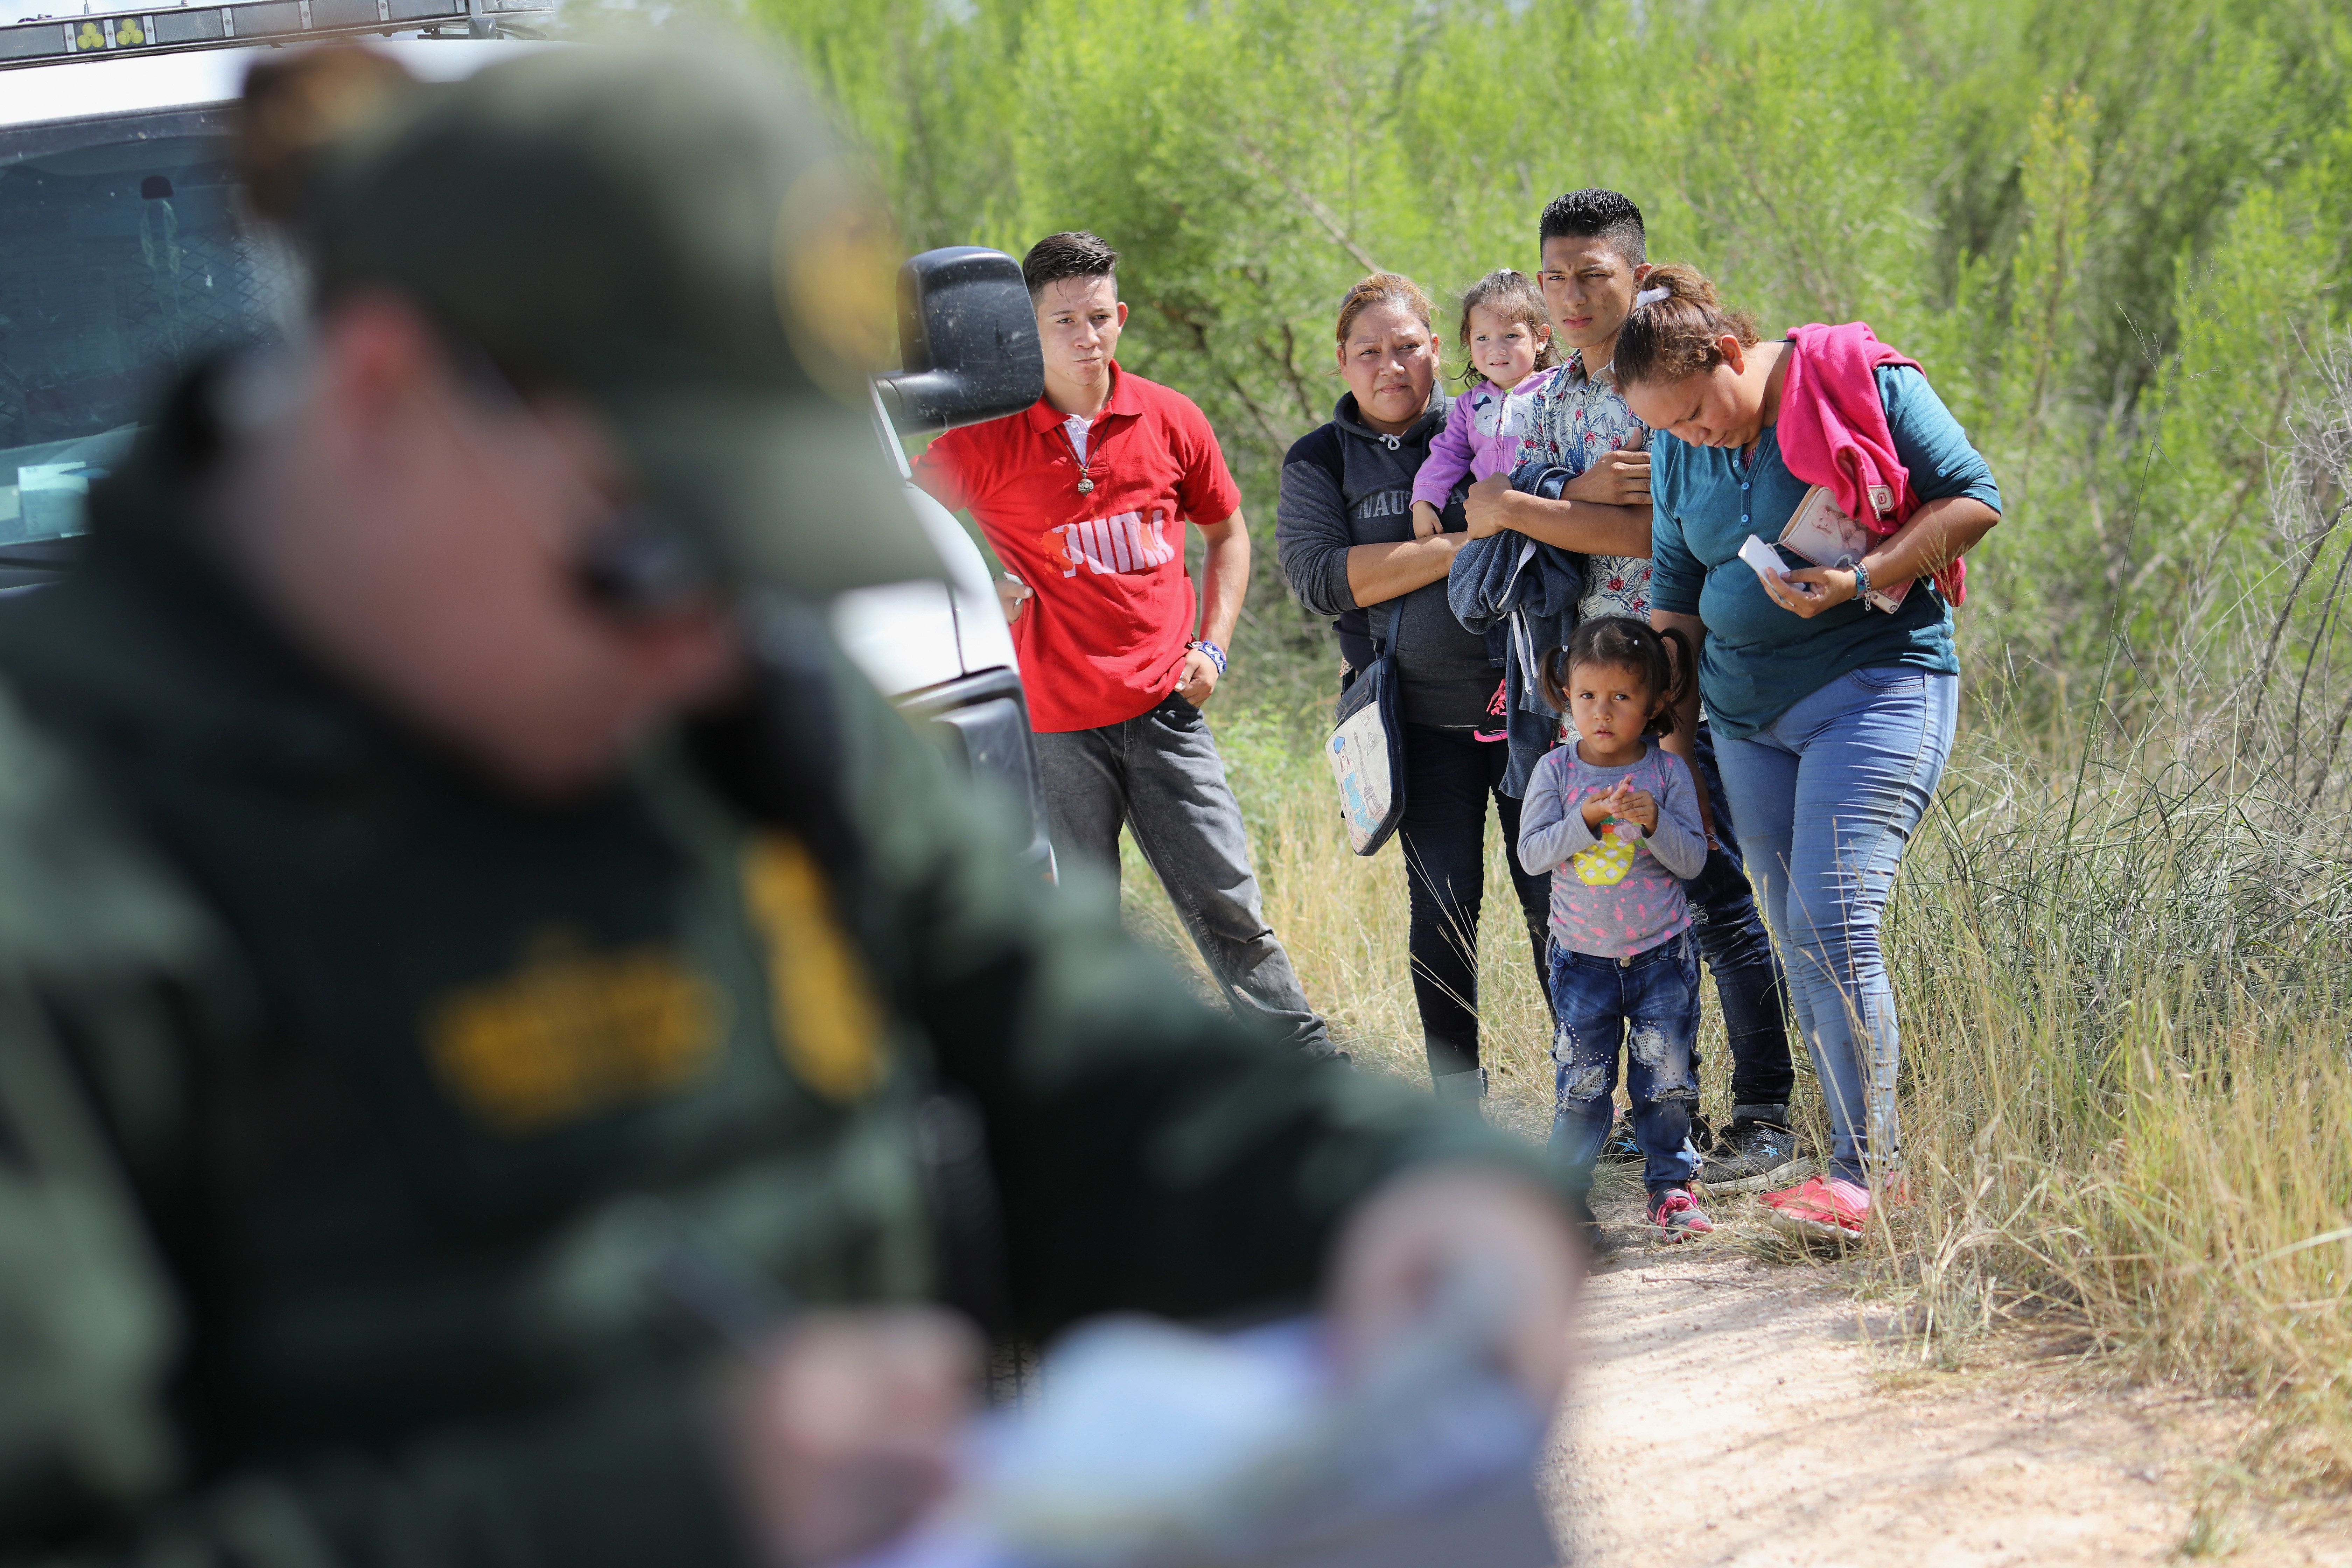 MCALLEN, TX - JUNE 12:  Central American asylum seekers wait as U.S. Border Patrol agents take groups of them into custody on June 12, 2018 near McAllen, Texas. The families were then sent to a U.S. Customs and Border Protection (CBP) processing center for possible separation. U.S. border authorities are executing the Trump administration's zero tolerance policy towards undocumented immigrants. U.S. Attorney General Jeff Sessions also said that domestic and gang violence in immigrants' country of origin would no longer qualify them for political-asylum status.  (Photo by John Moore/Getty Images)